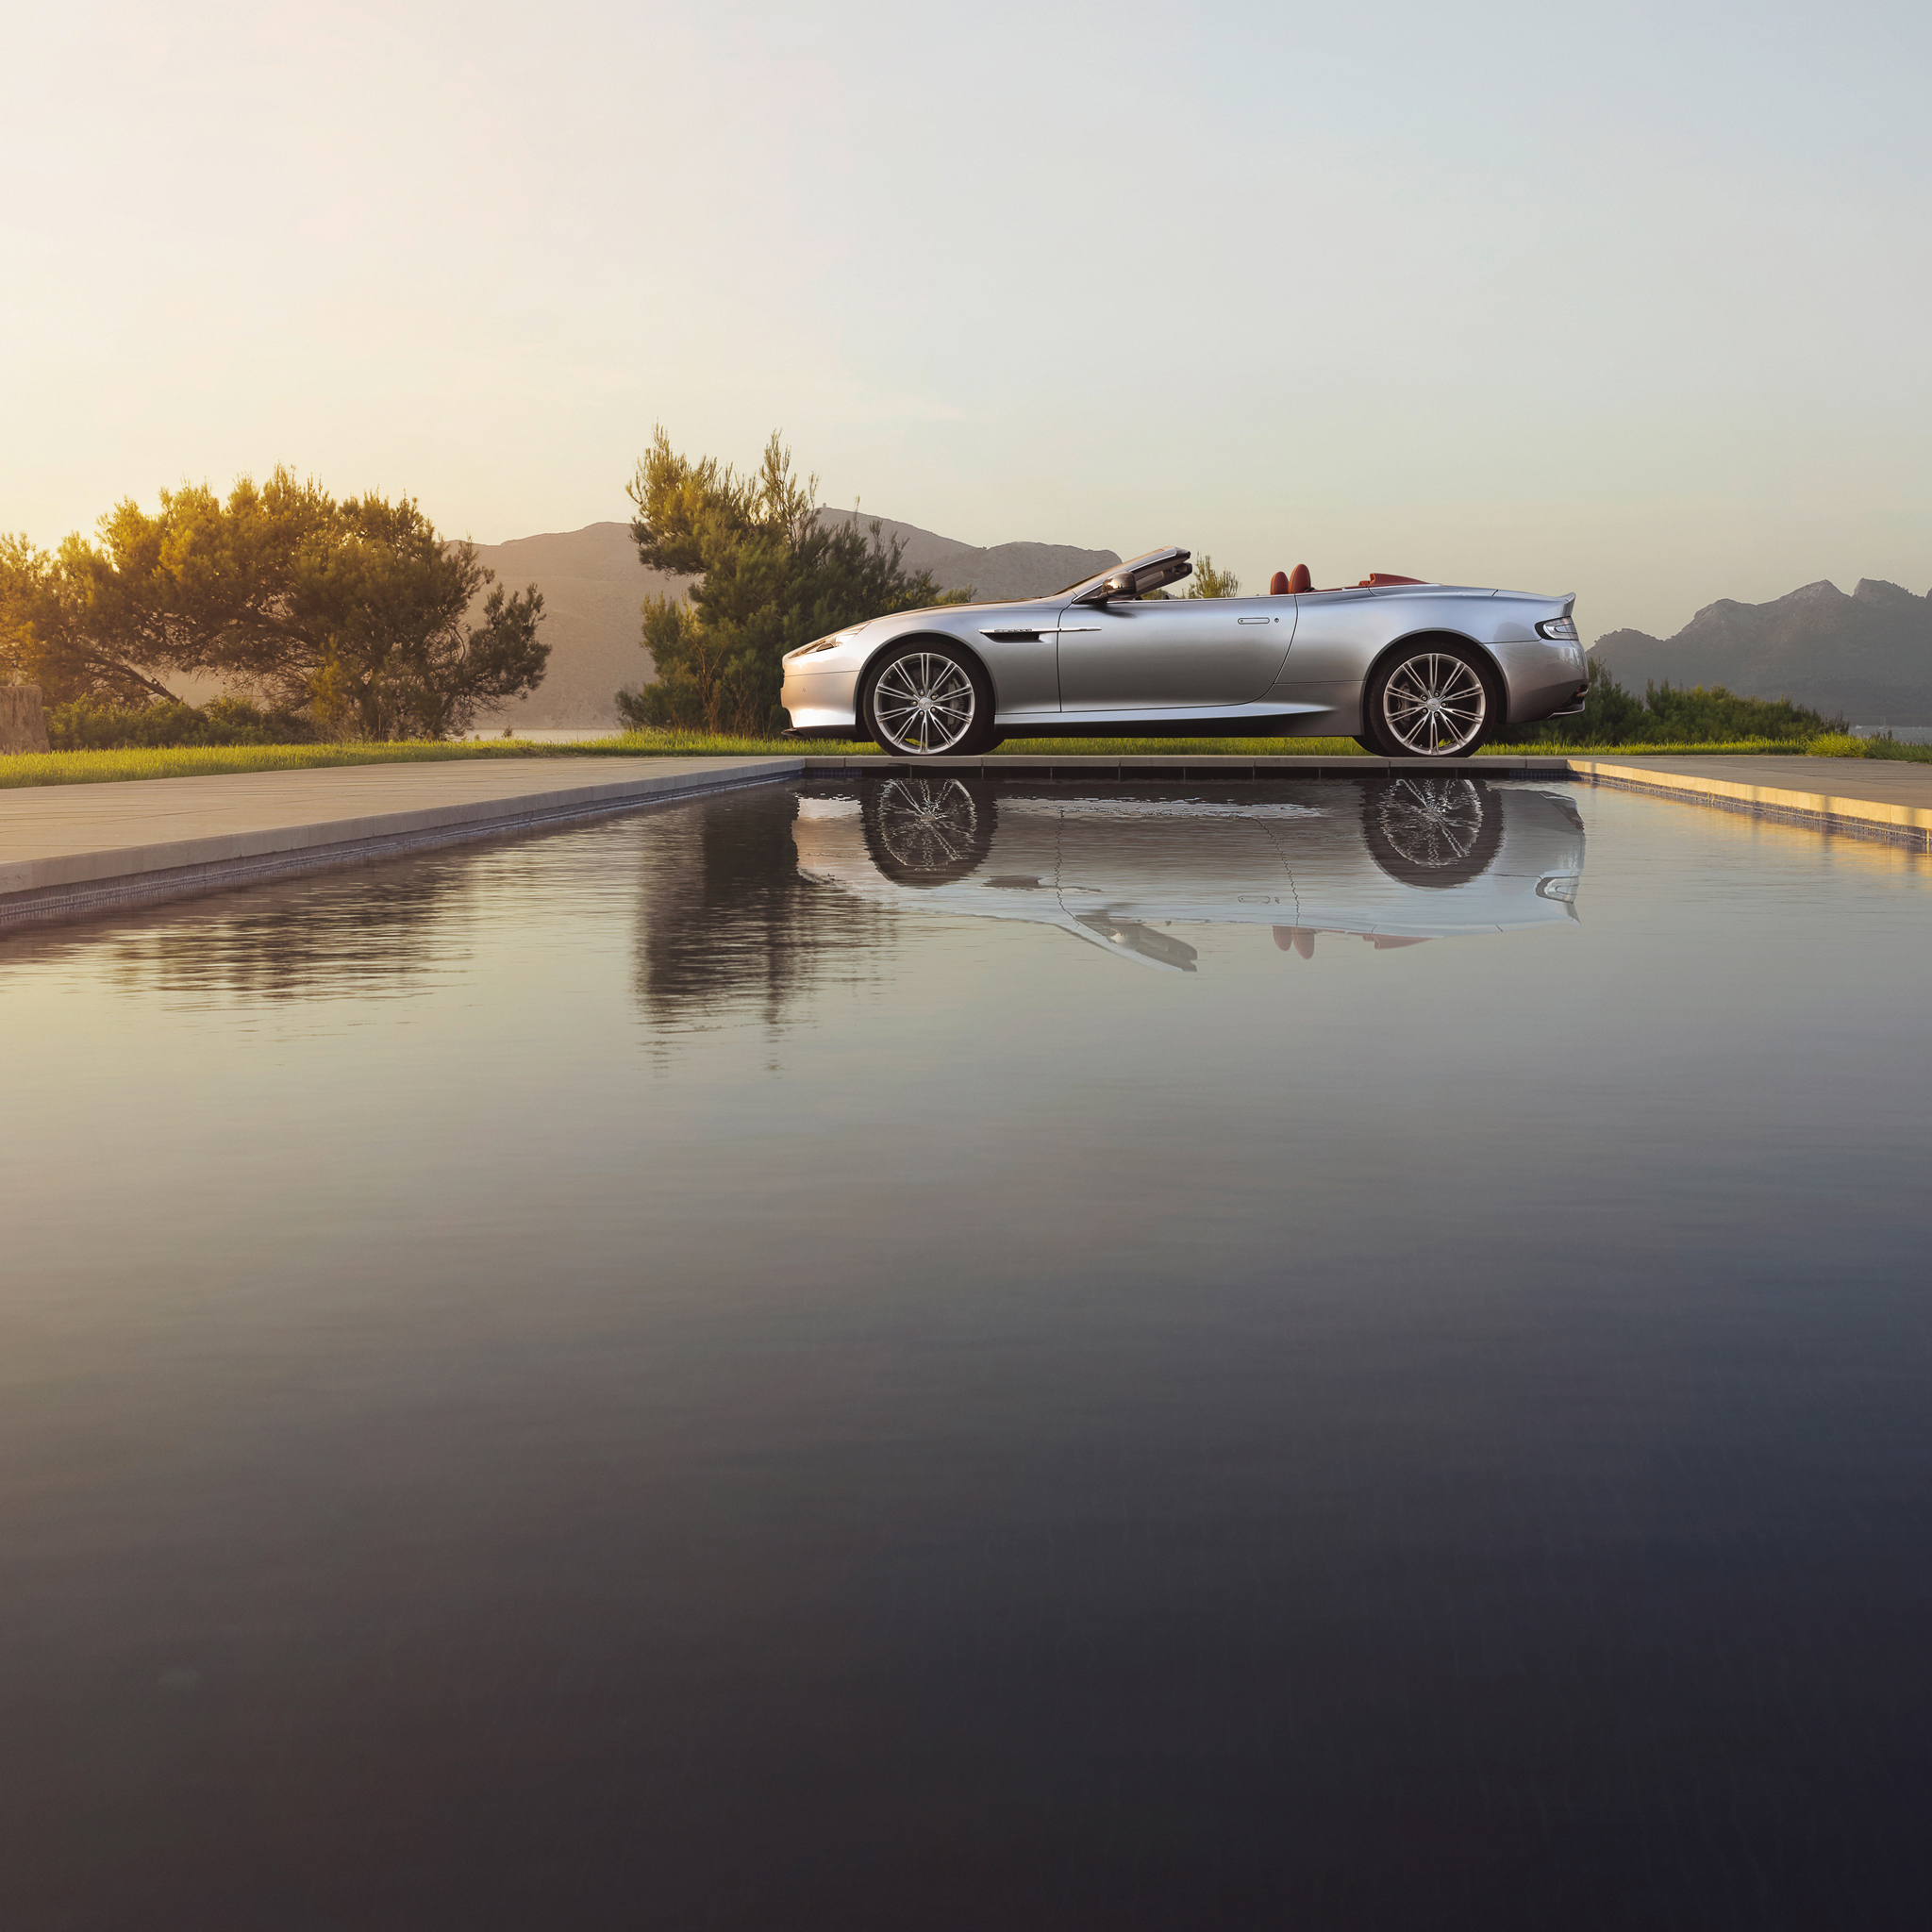 Aston-Martin-DB9-3Wallpapers-iPad-Retina